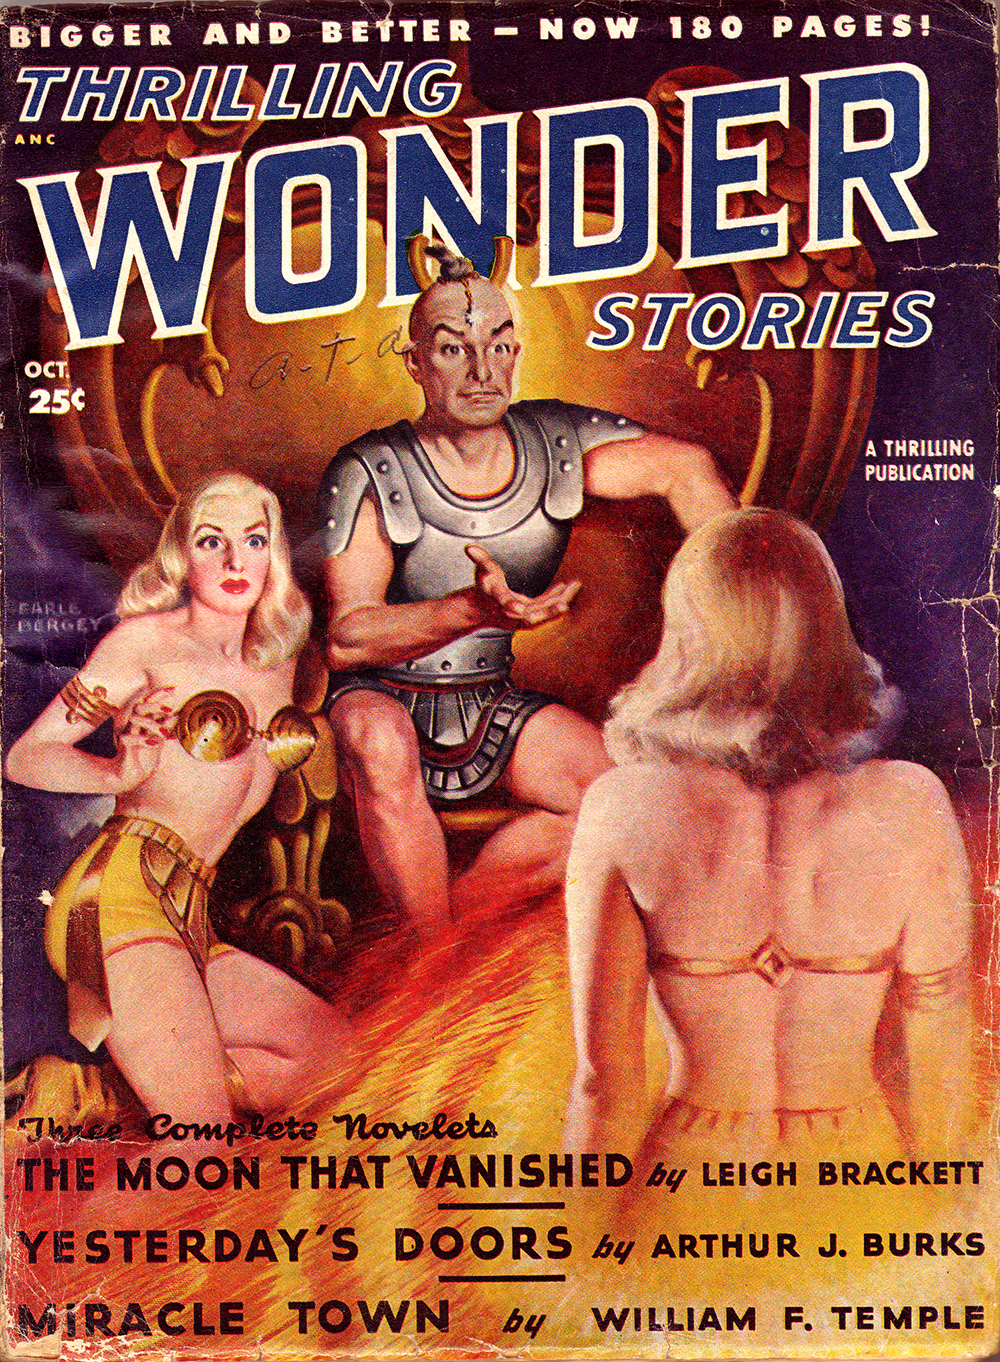 thrilling-wonder-stories-cover-art.jpg